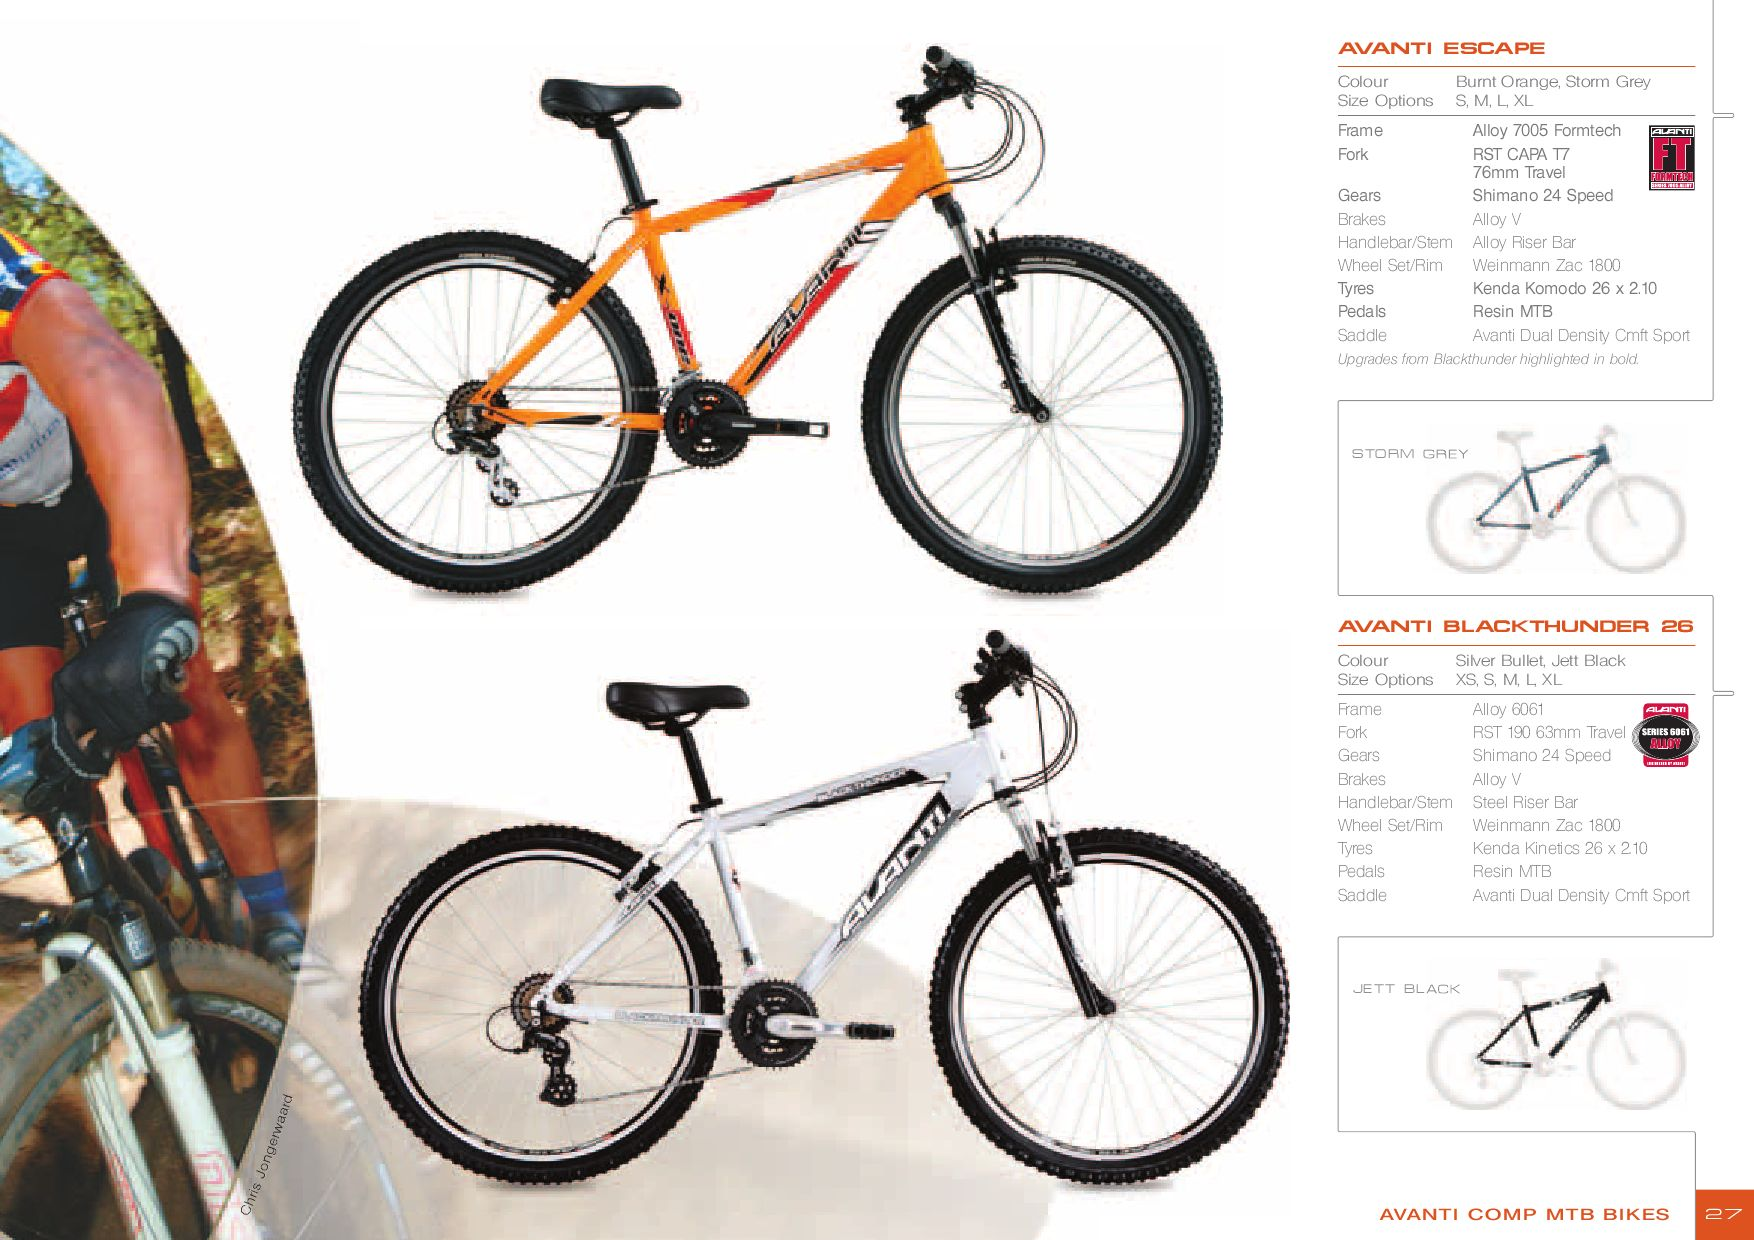 2007 Avanti Bike Catalogue by AvantiPlus Cycles - issuu